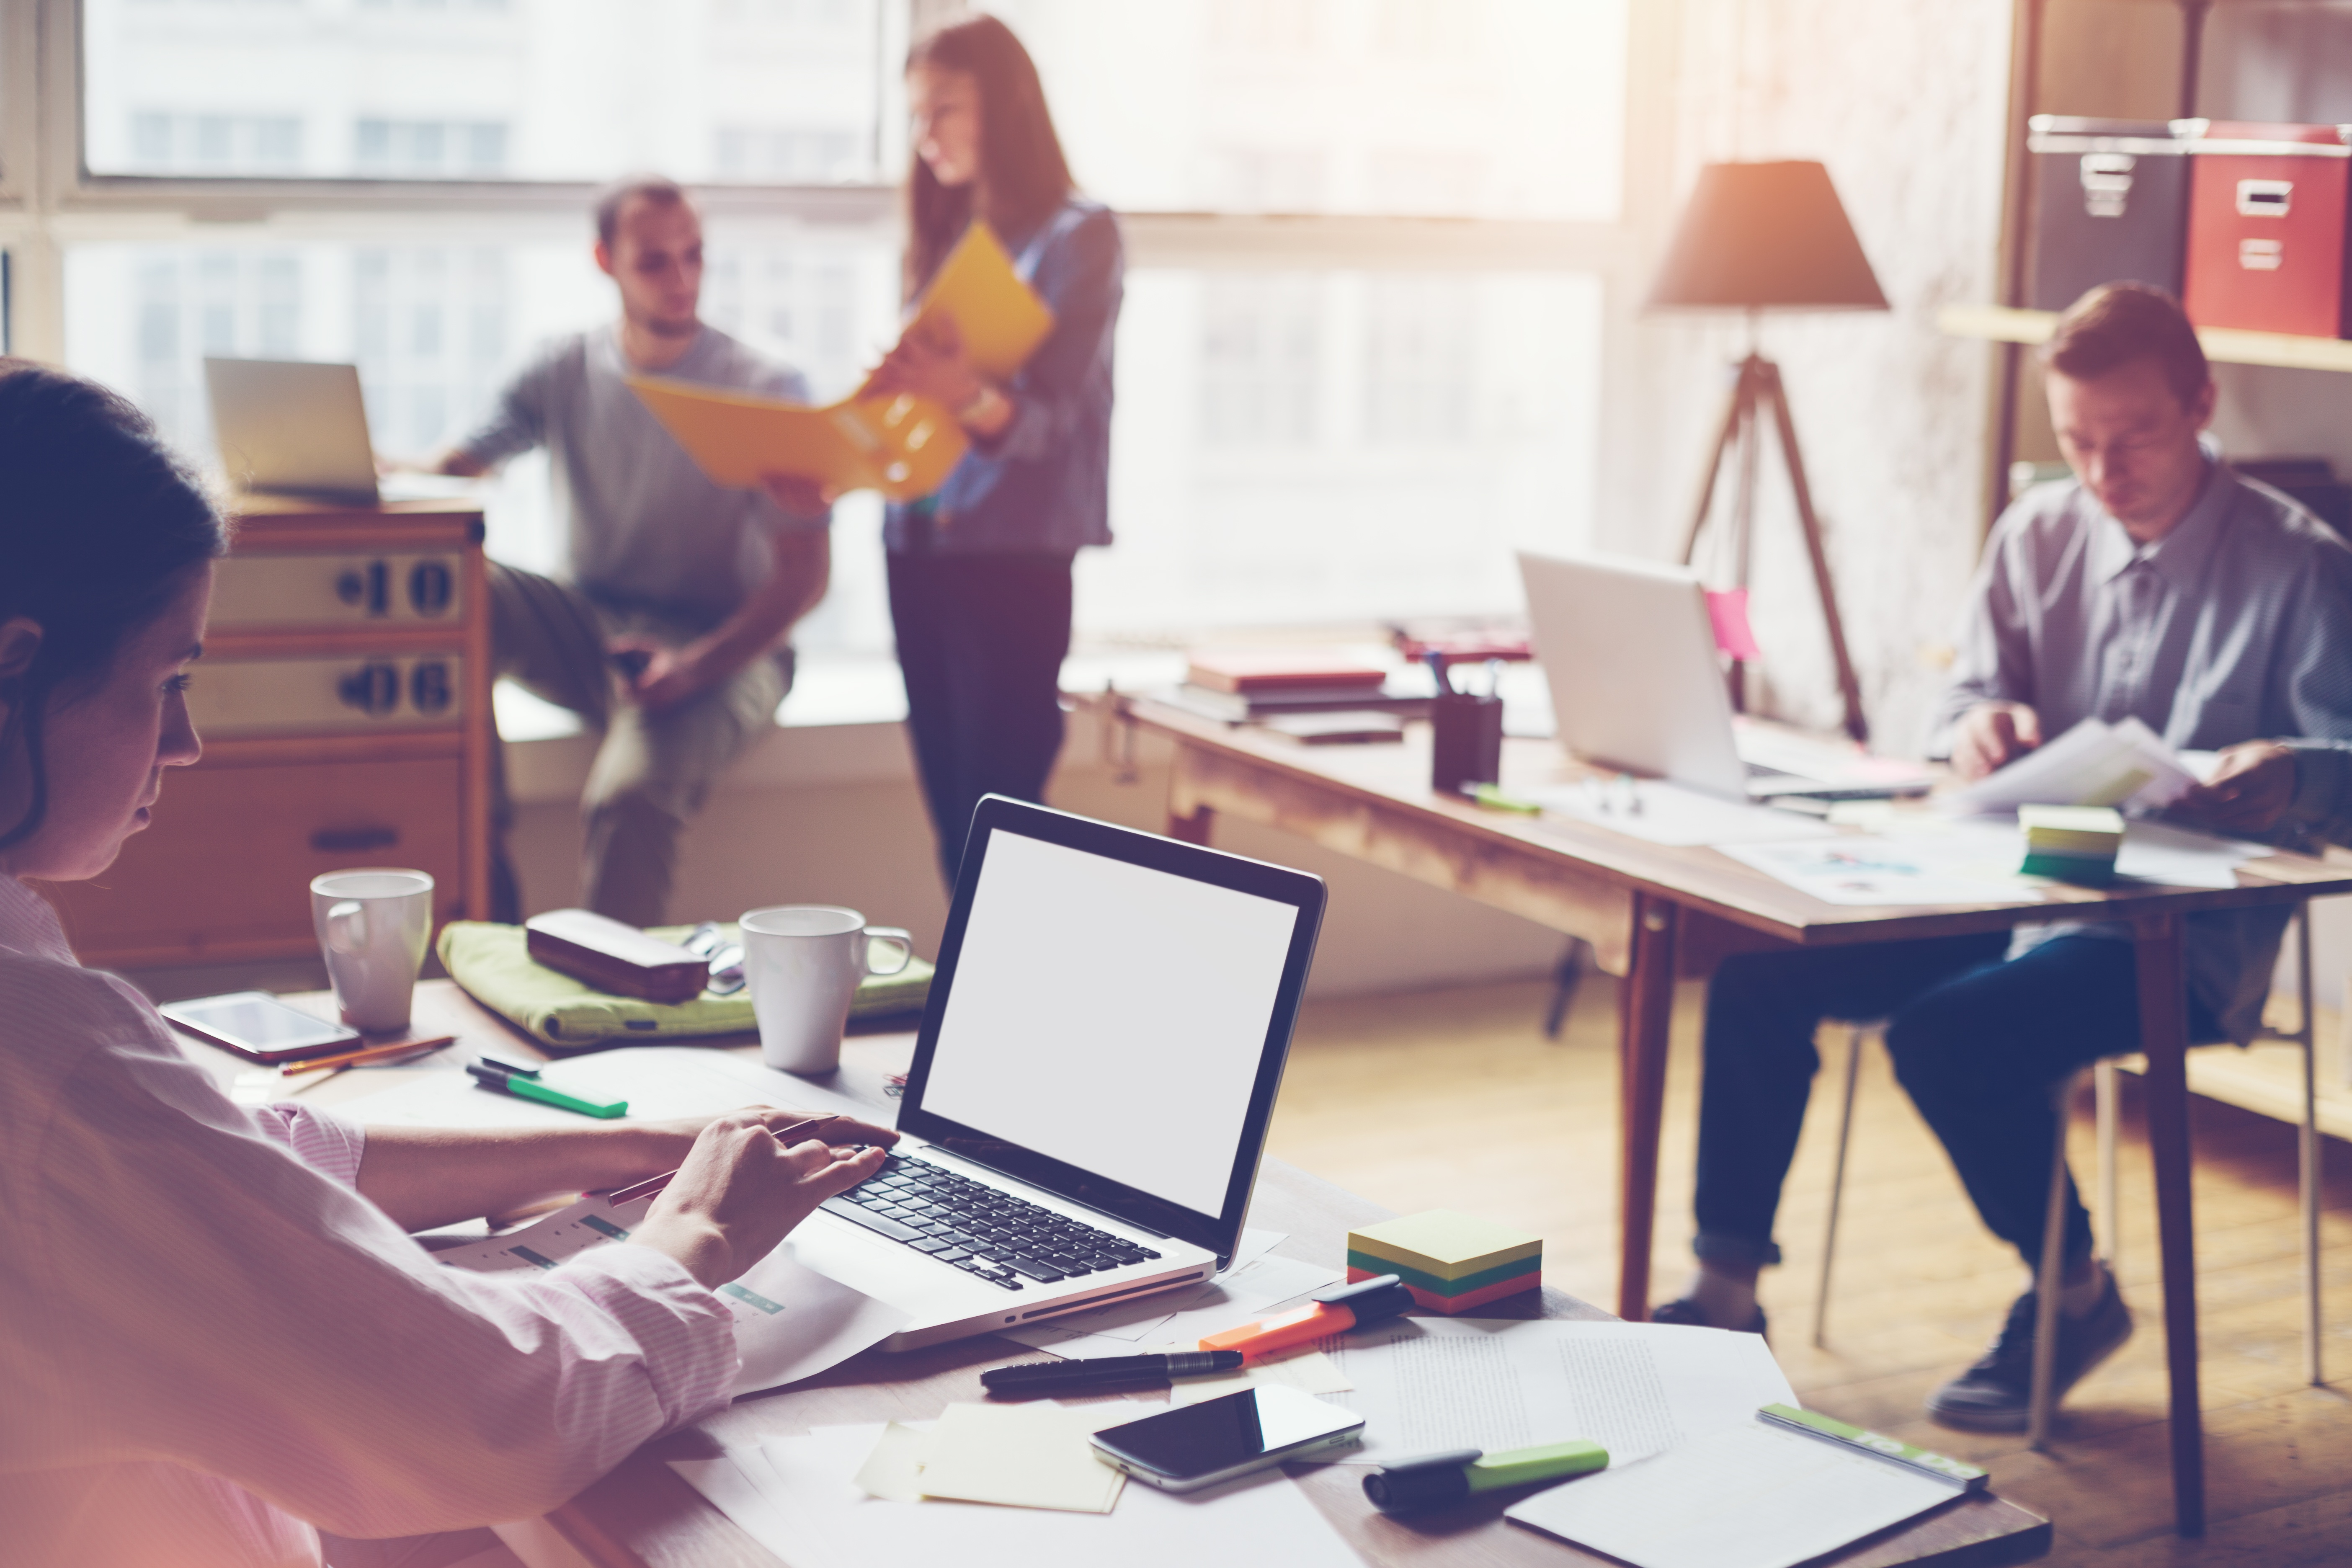 Attracting Millennials with Office Design